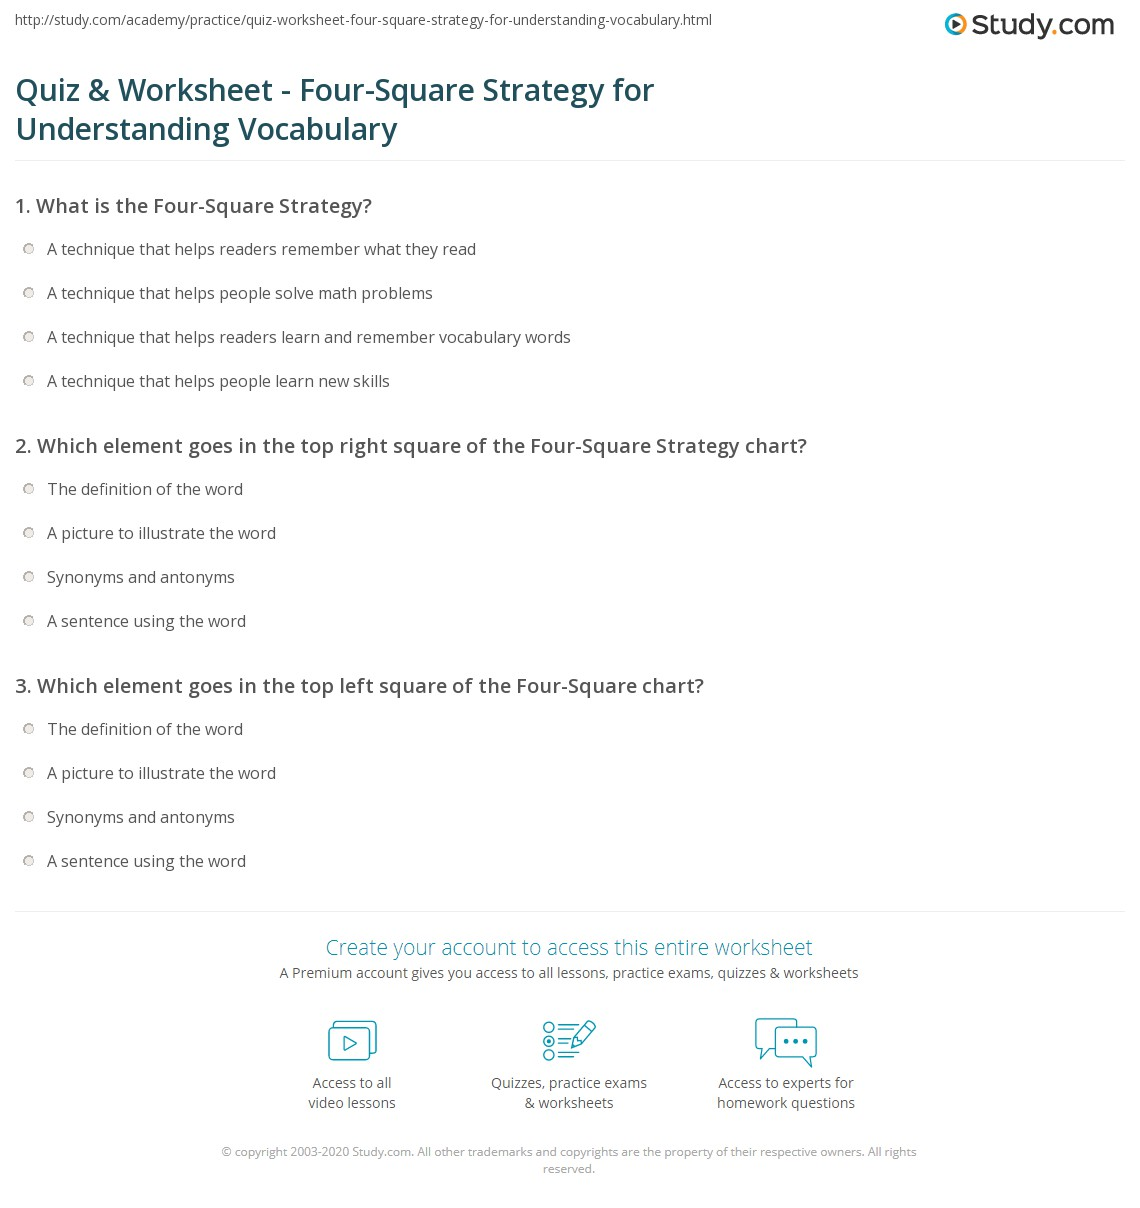 Quiz Worksheet Four Square Strategy For Understanding Vocabulary